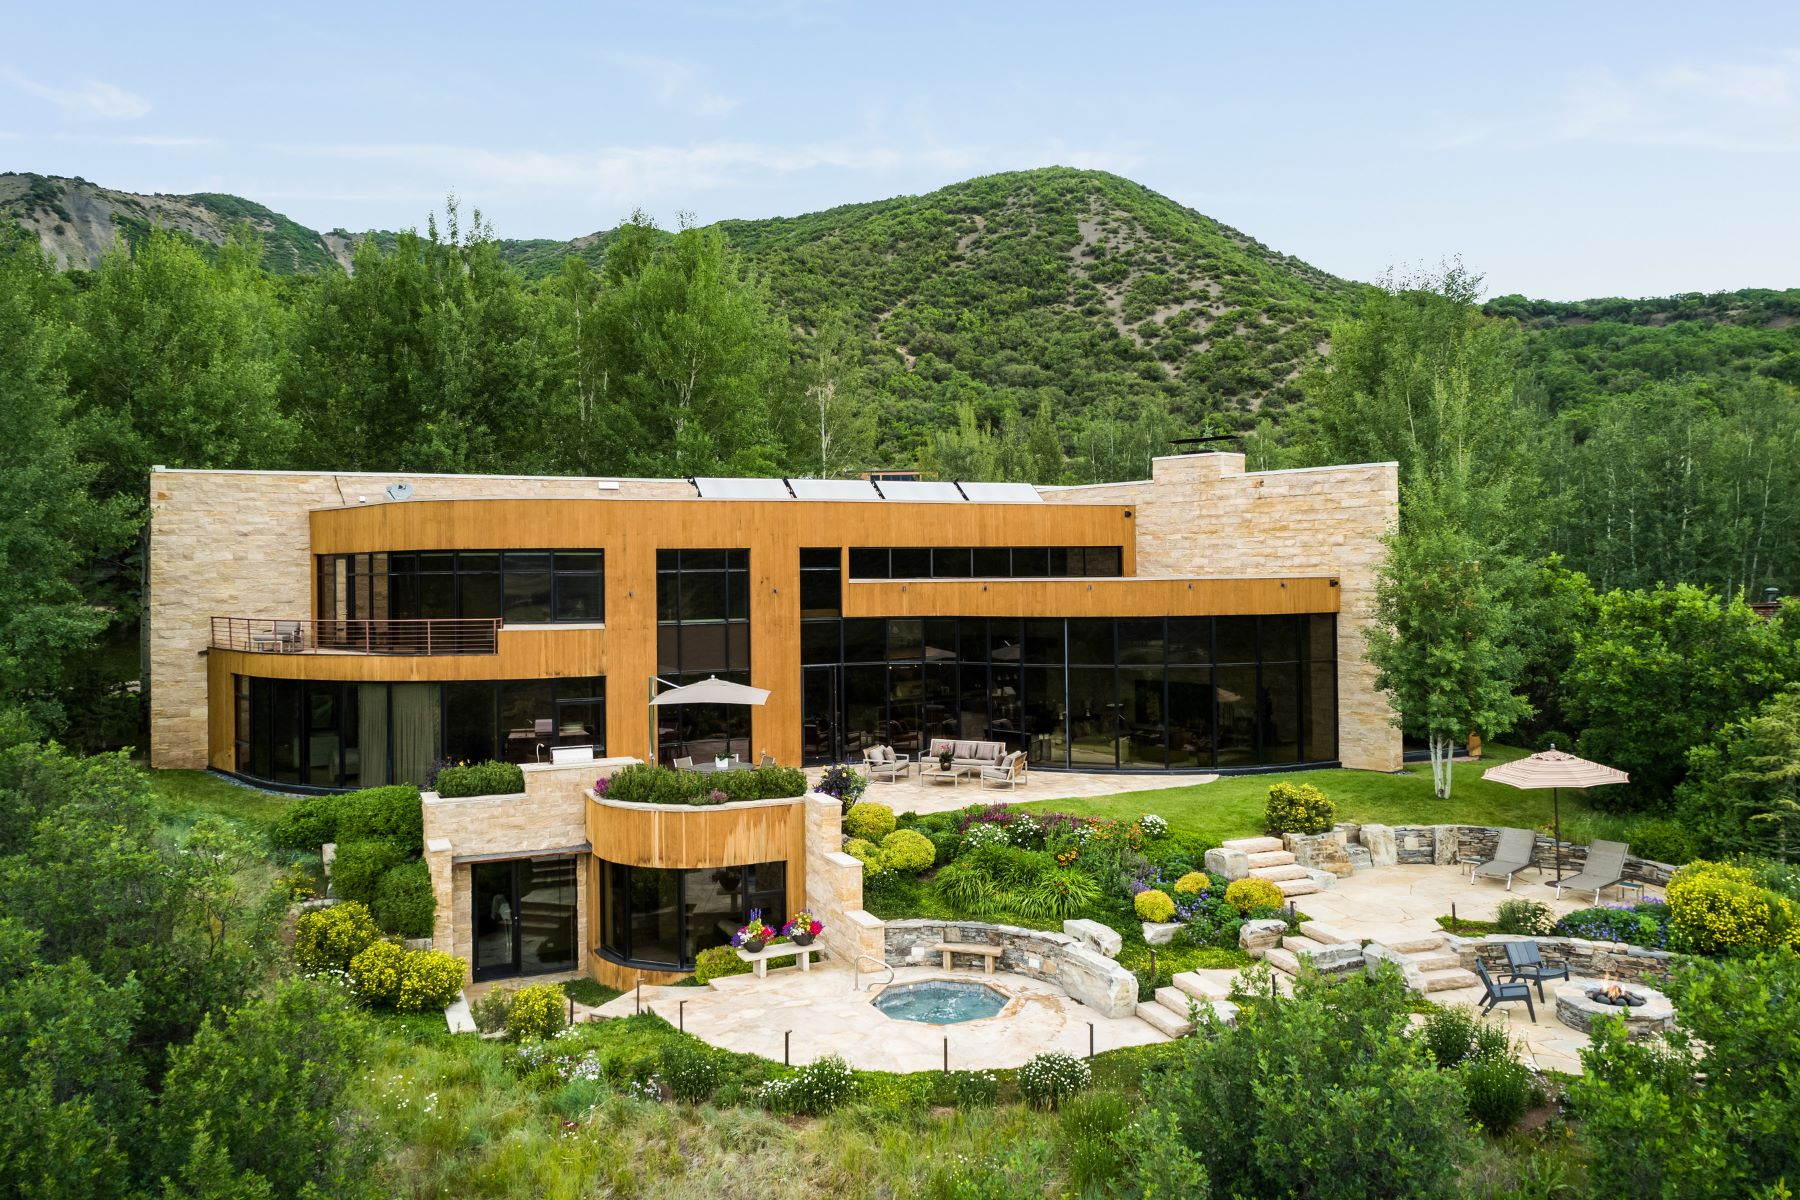 Single Family Home for Sale at Horse Ranch Estate 143 Saddleback Lane, Snowmass Village, Colorado, 81615 United States